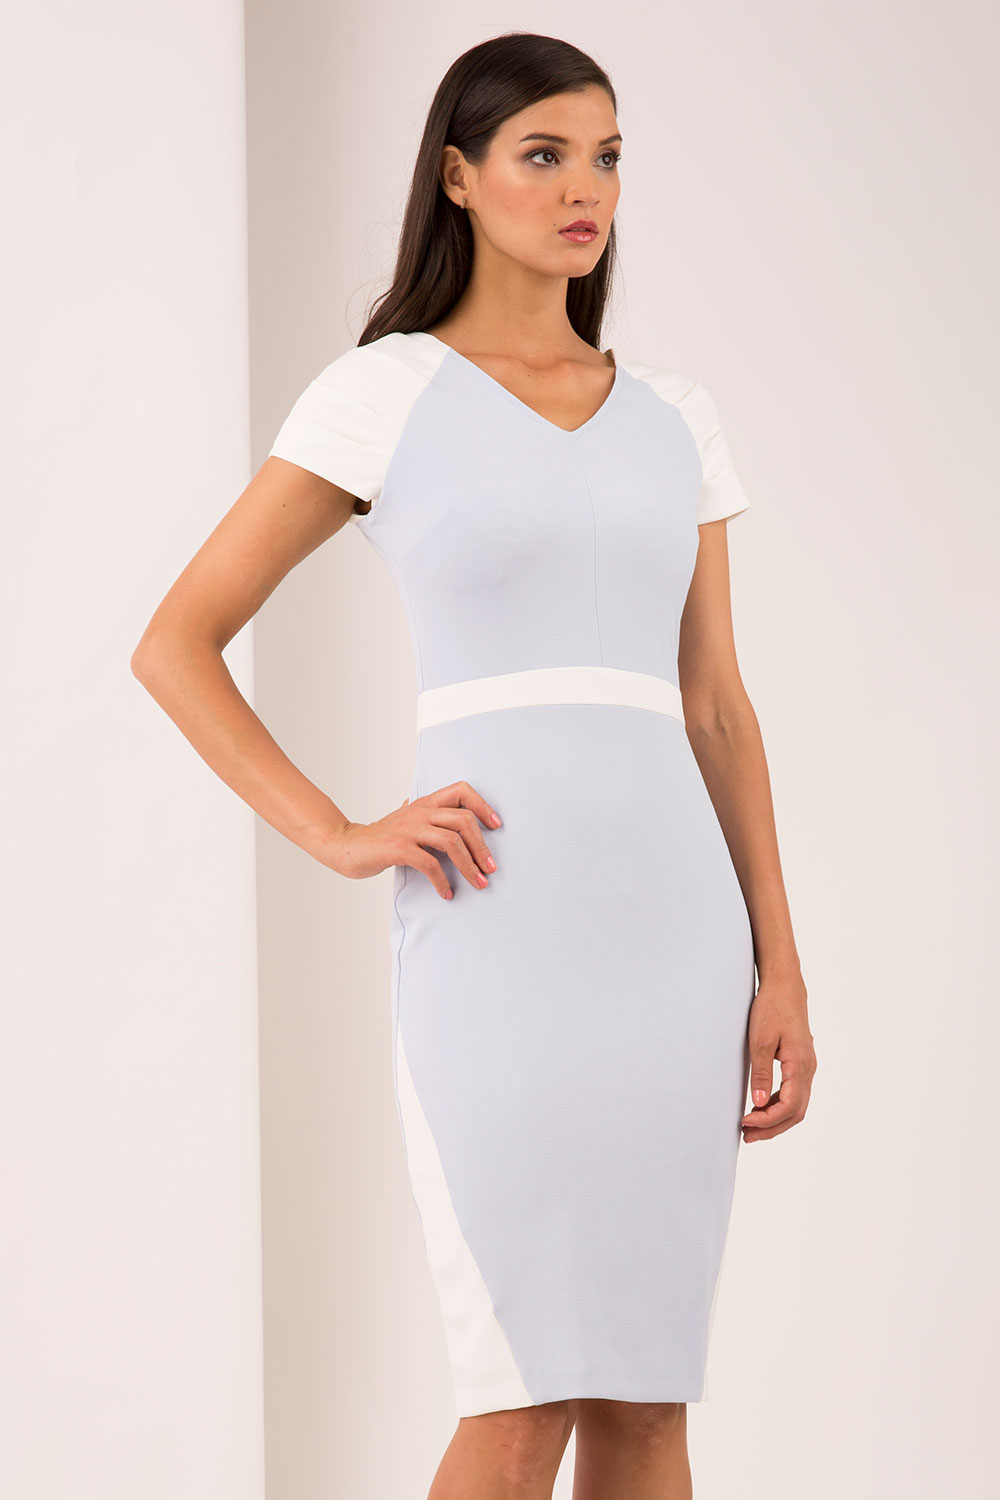 Hybrid Fashion 1275 Hailey Raglan Sleeved Dress